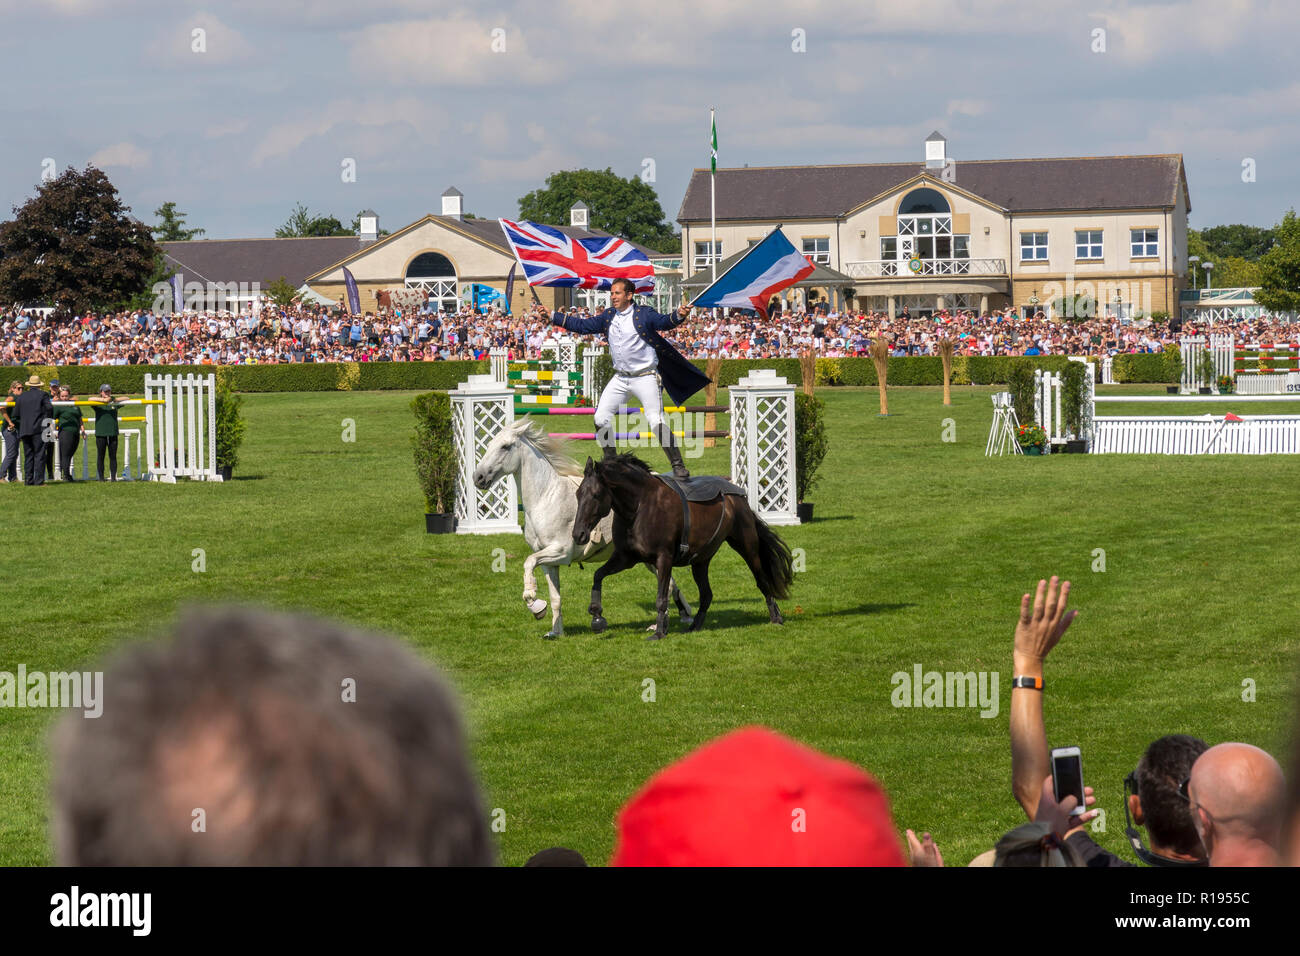 Equestrian dynamo Lorenzo demonstrates his bare back horse riding in the main arena at the Great Yorkshire Show Harrogate 2018 - Stock Image